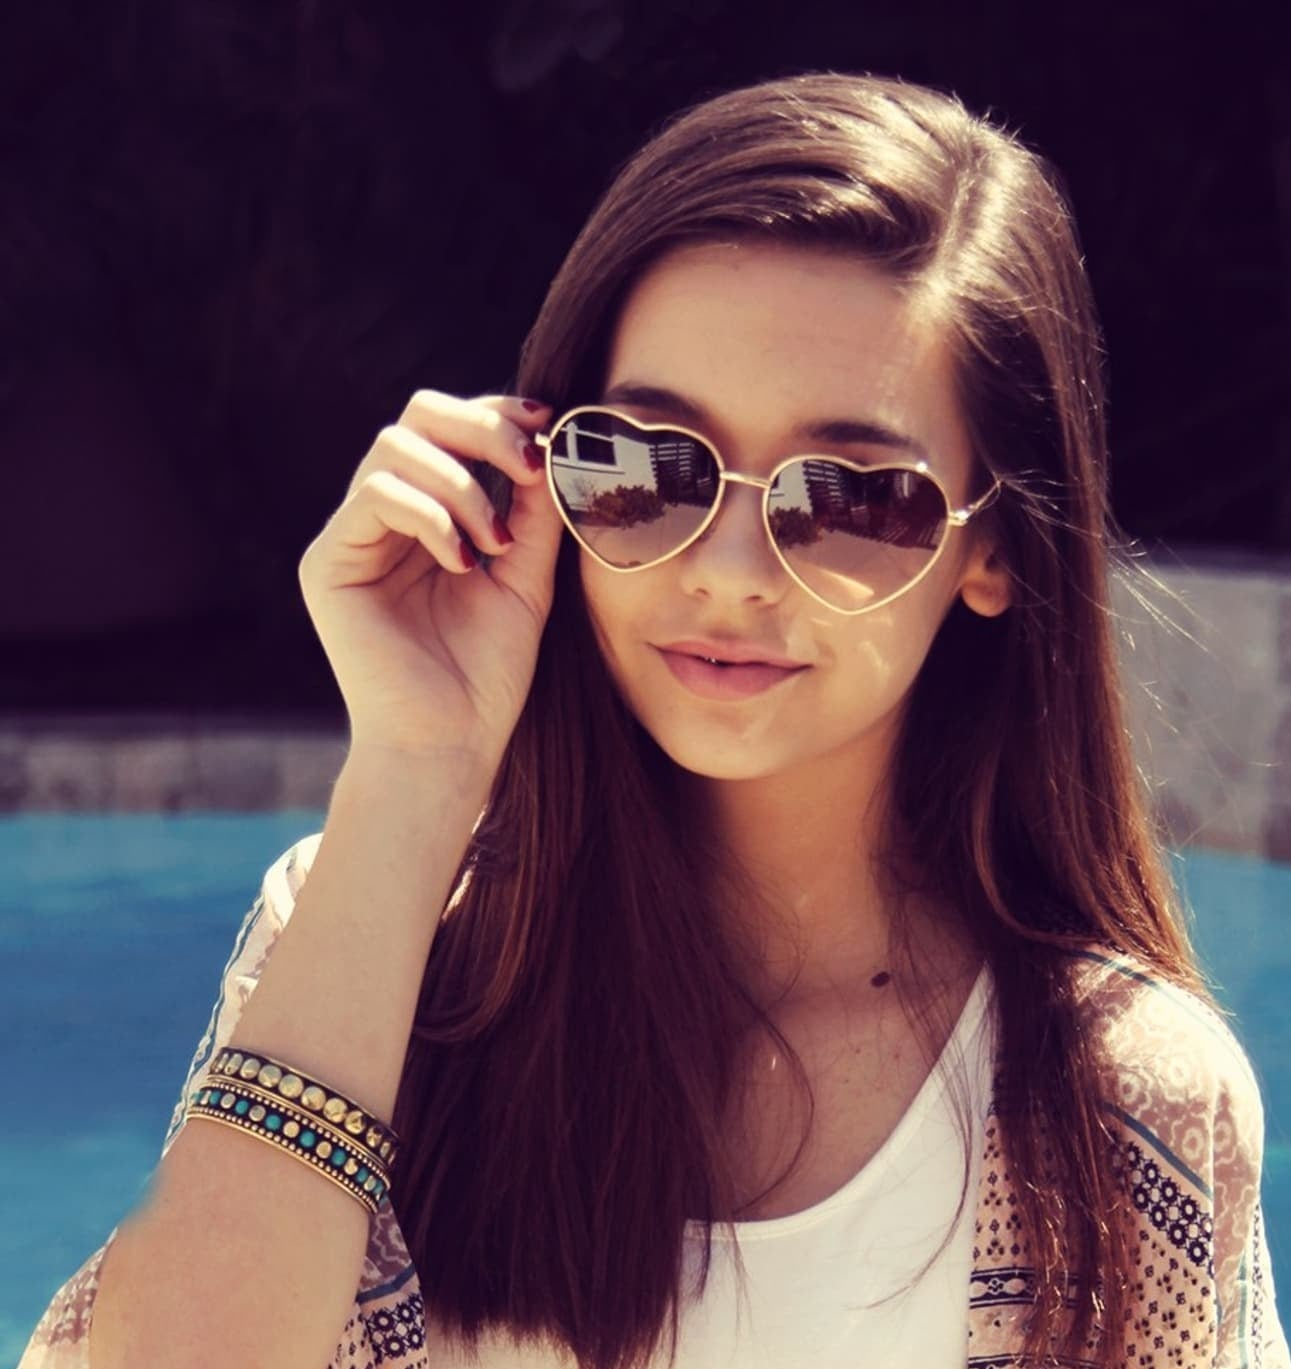 Model wearing the sunglasses with heart-shaped frames in gold and brown lenses